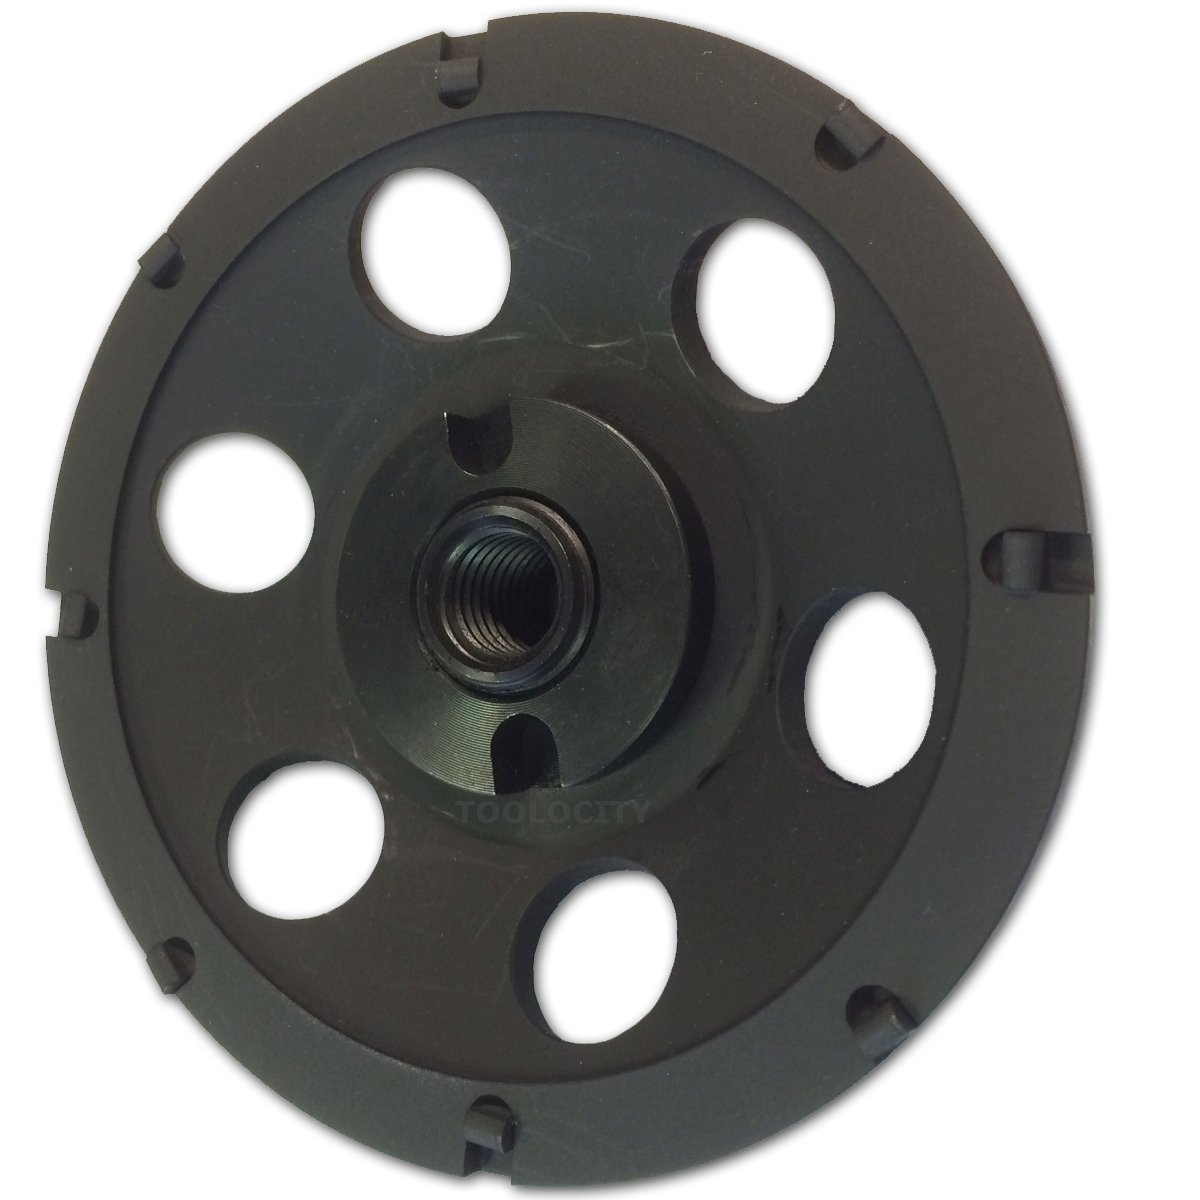 Toolocity ABWCD050P PCD Cup Wheel, 5-Inch